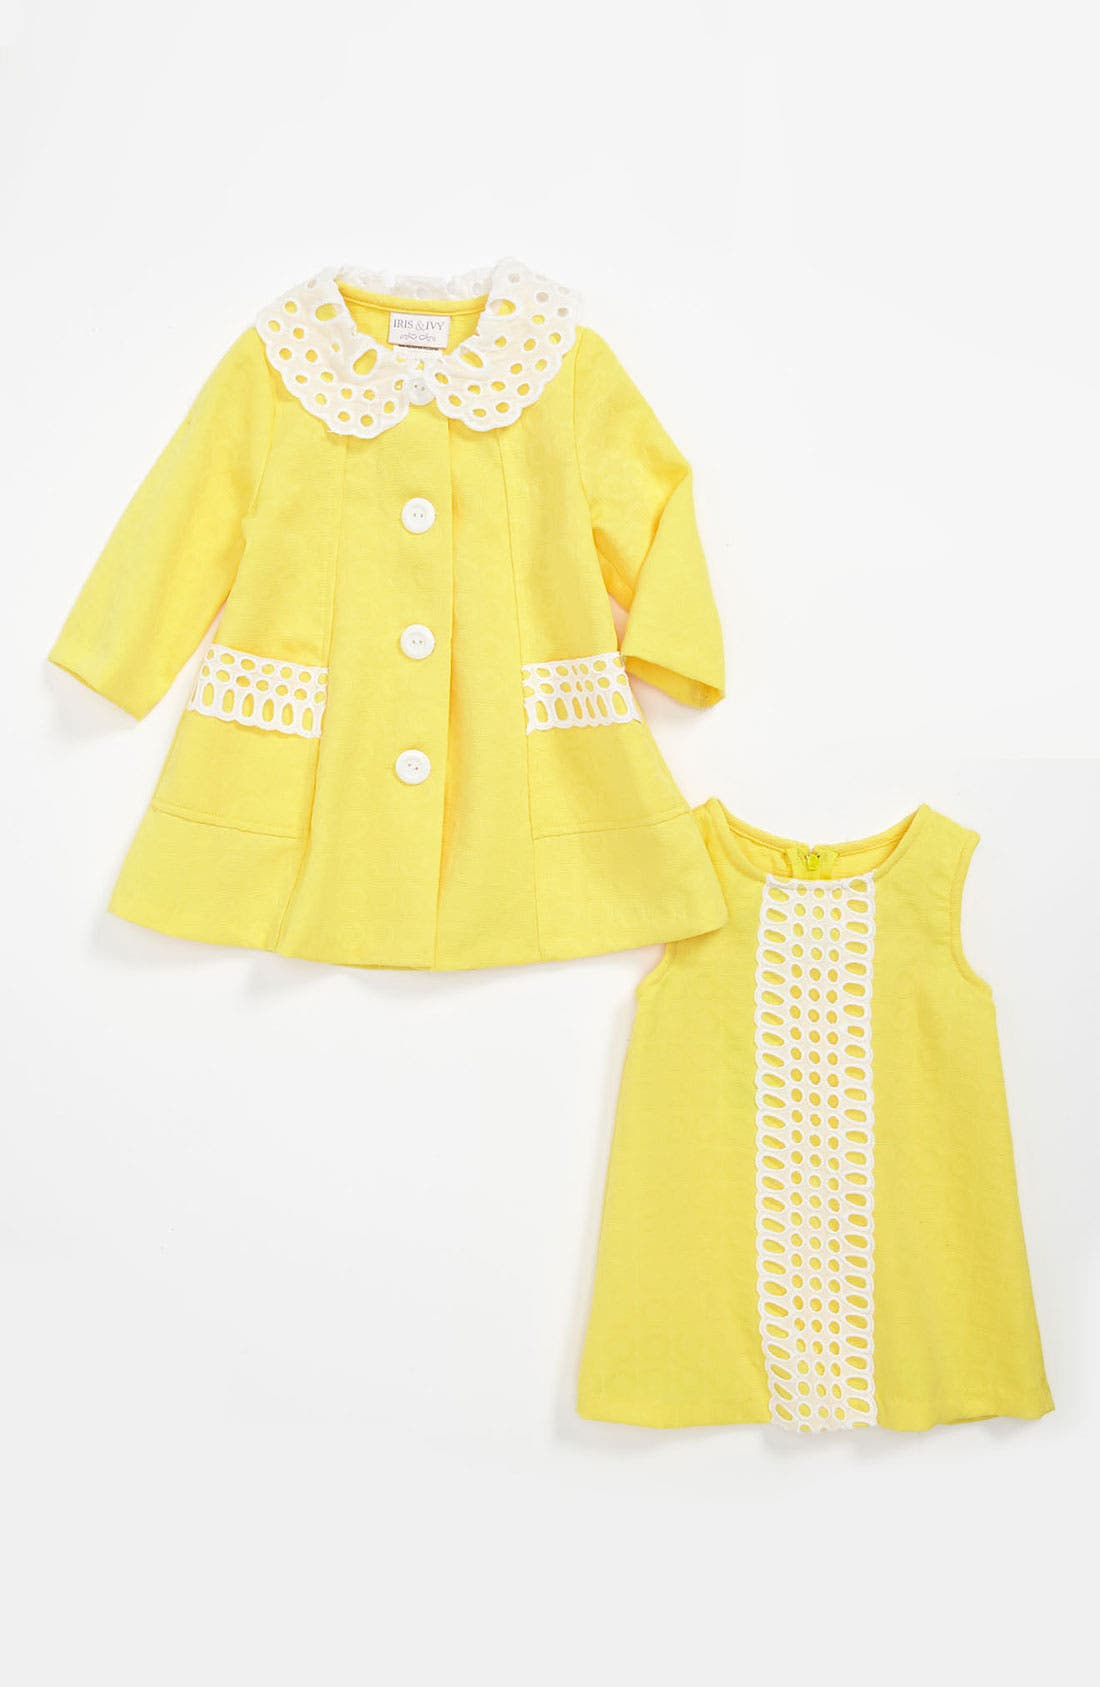 Alternate Image 1 Selected - Iris & Ivy Shift Dress & Jacket (Infant)